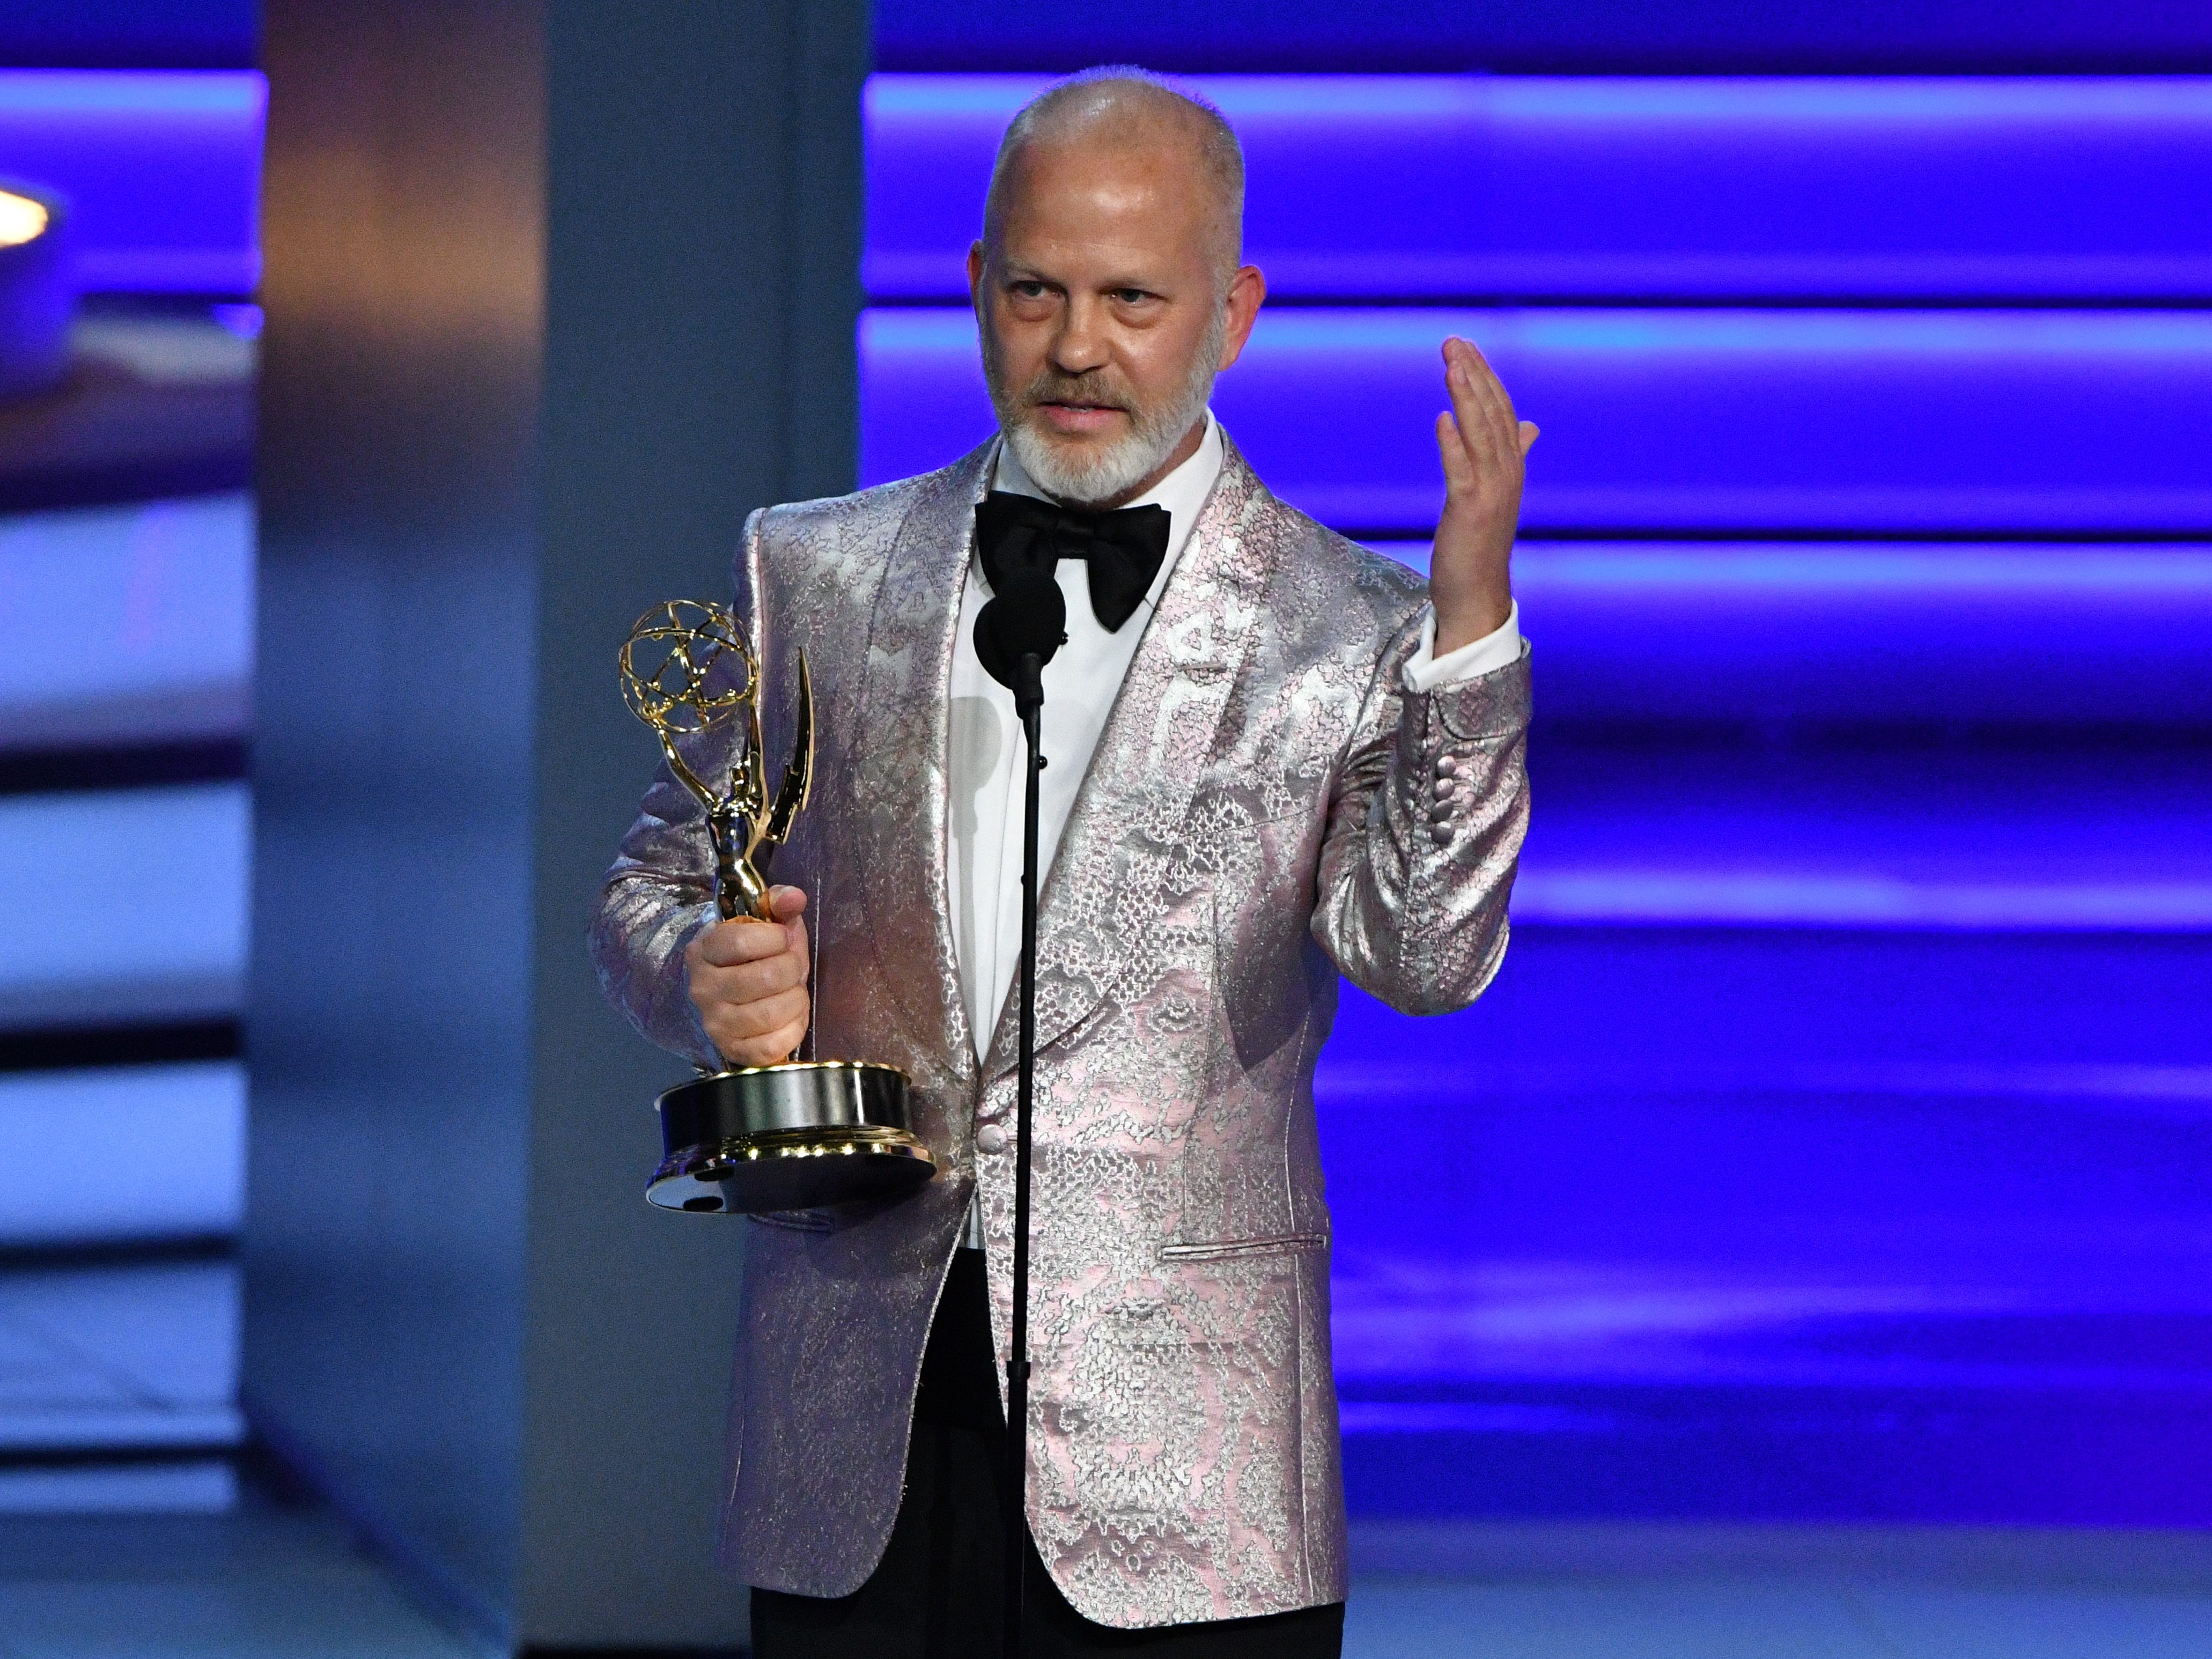 """Ryan Murphy accepts the the award for outstanding directing for a limited series, movie or dramatic special for his work on the FX Networks mini-series """"The Assassination Of Gianni Versace: American Crime Story."""""""